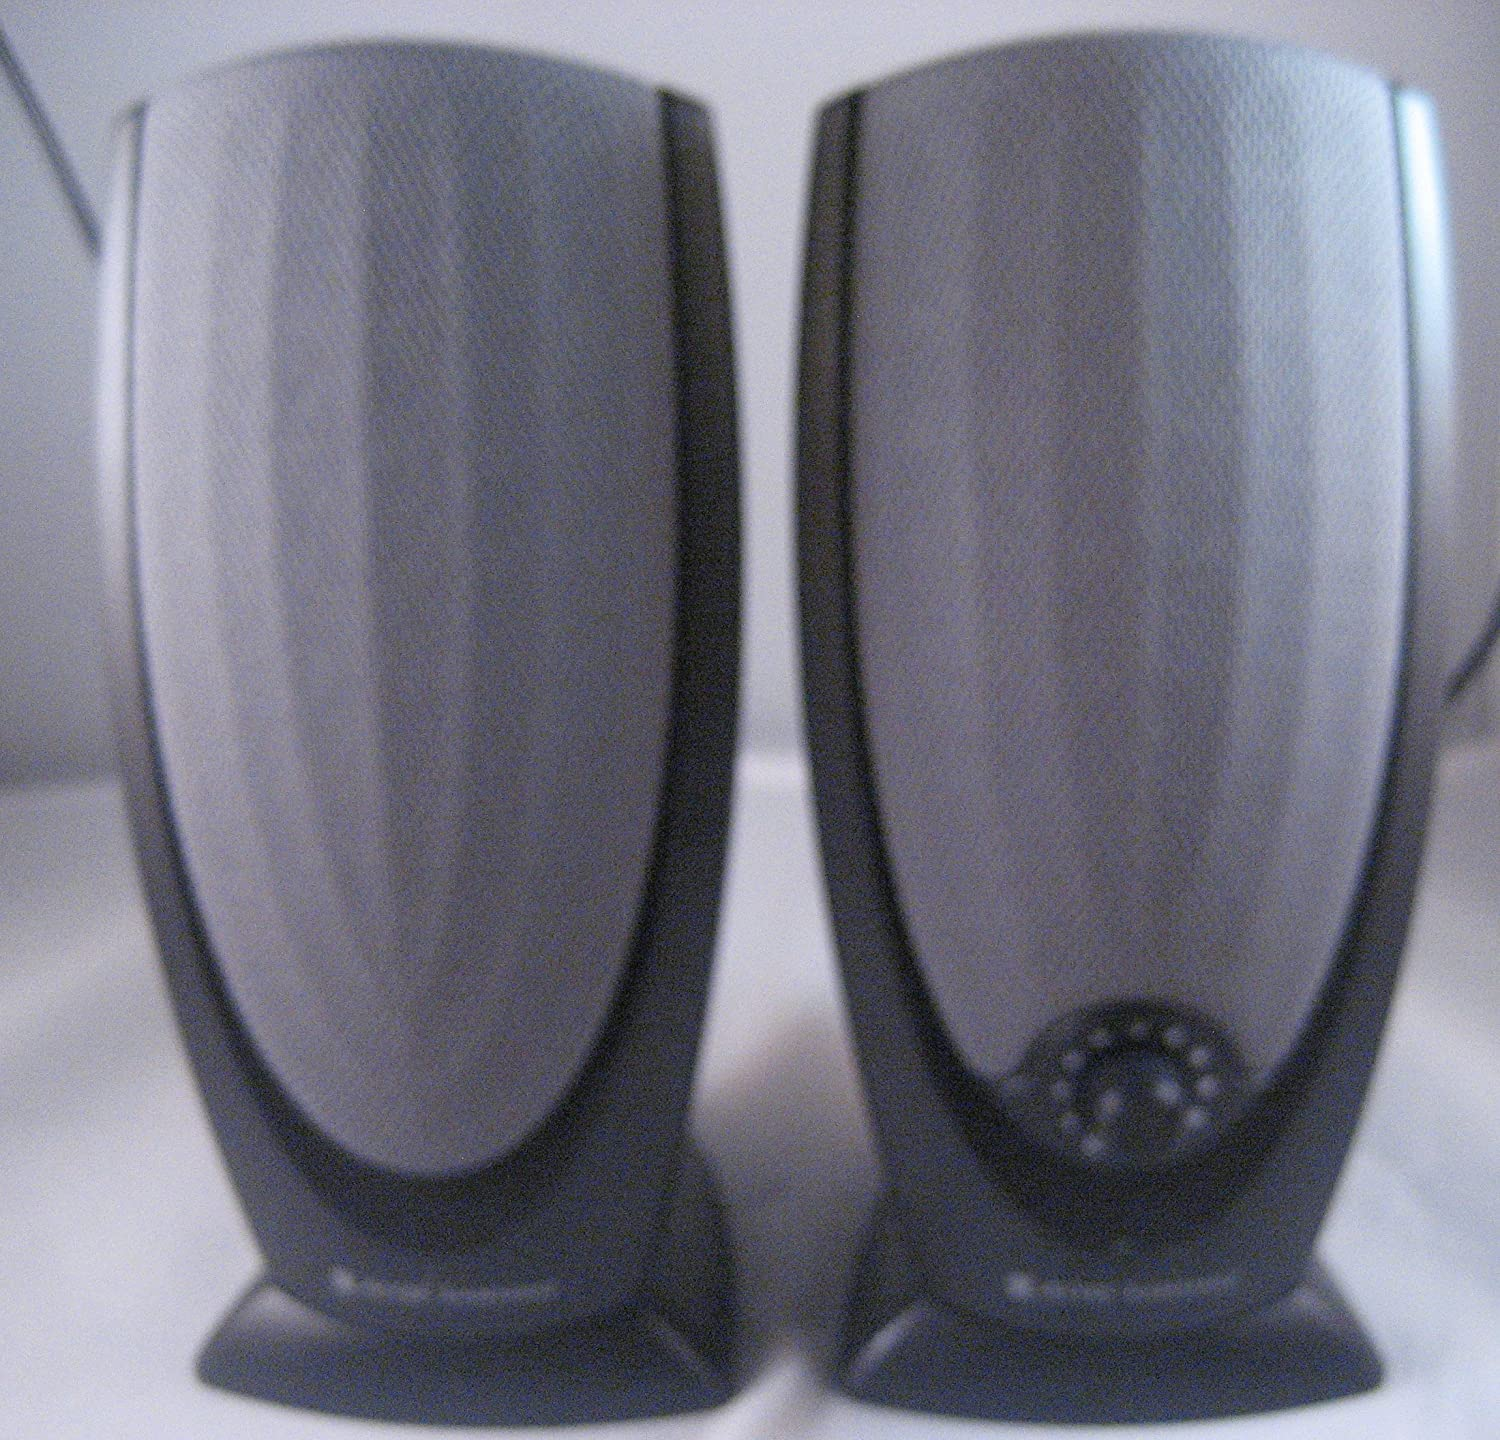 Altec Lansing Two-Piece Speaker System for Computers/Laptops